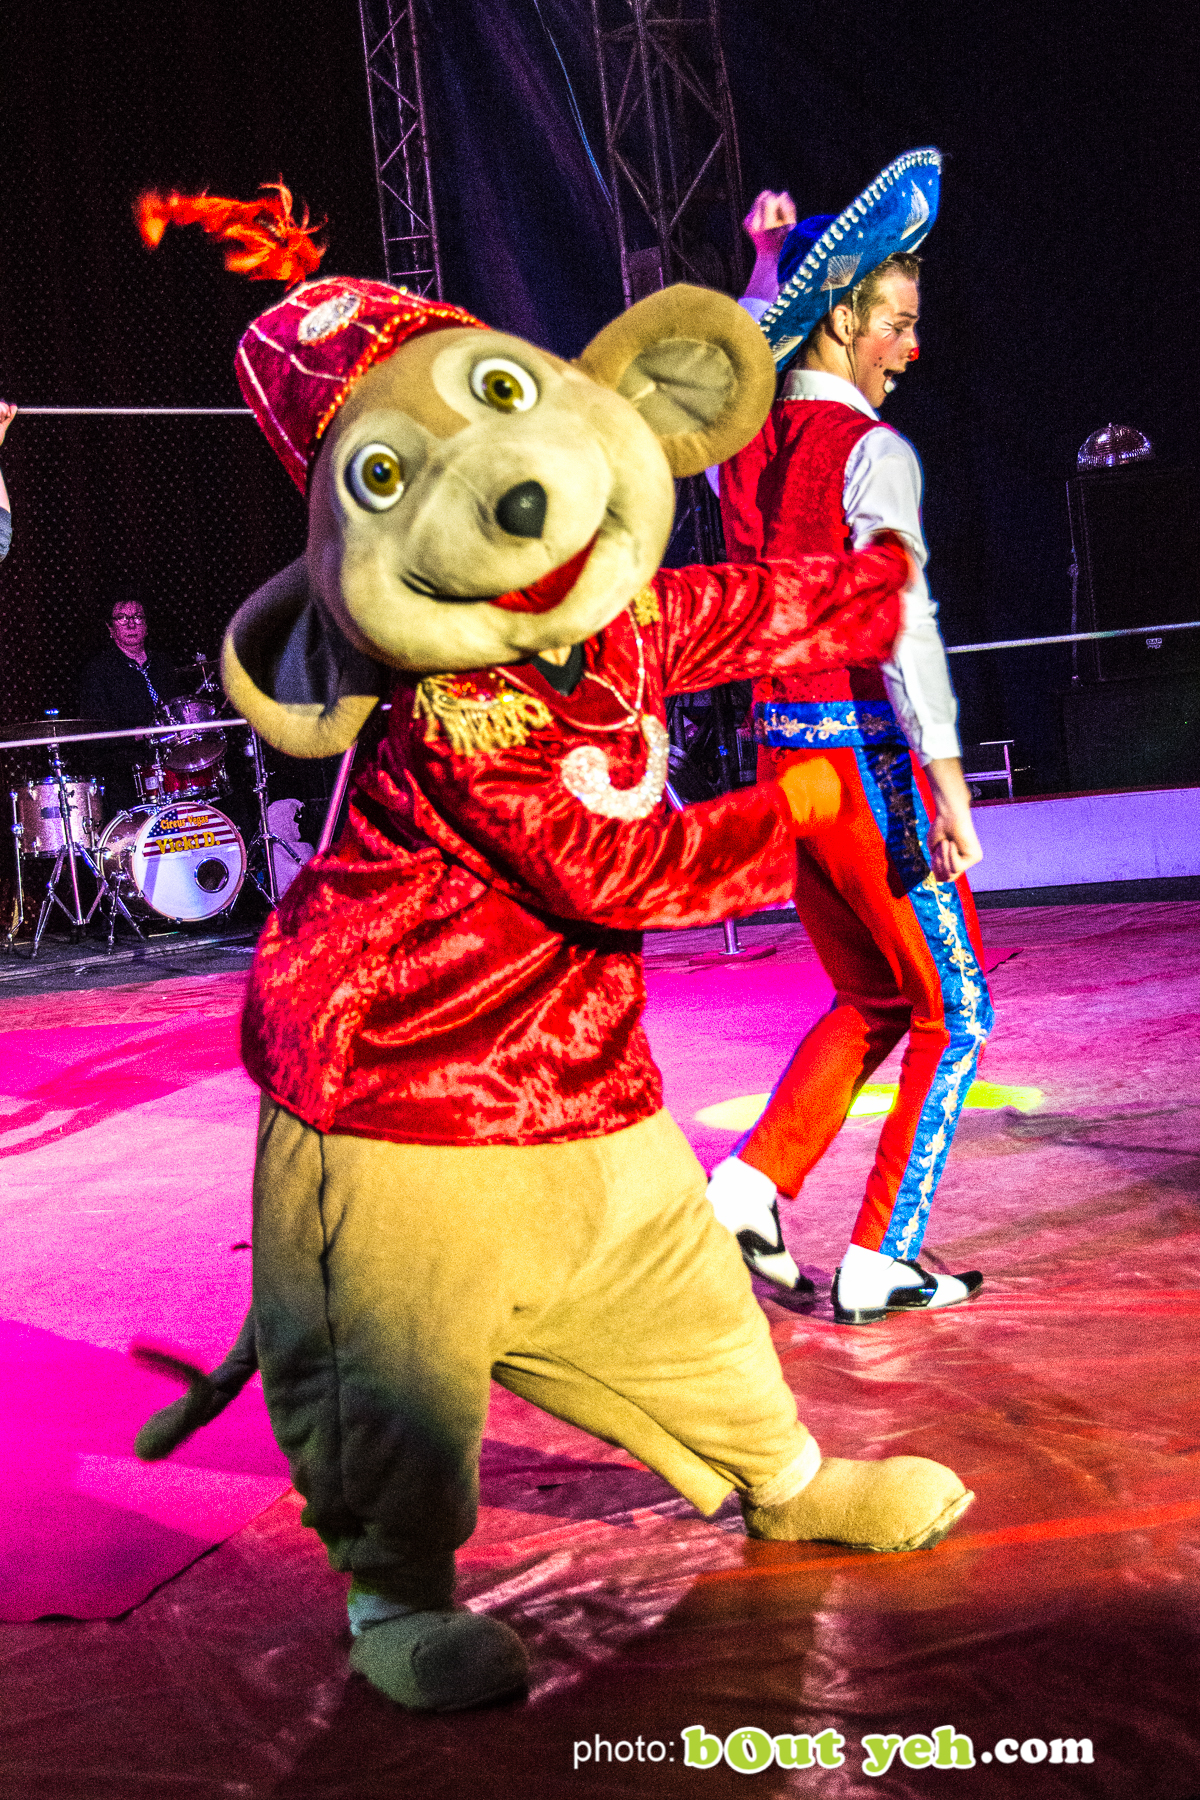 Bout Yeh photographers Belfast photograph 7534 - Circus Vegas